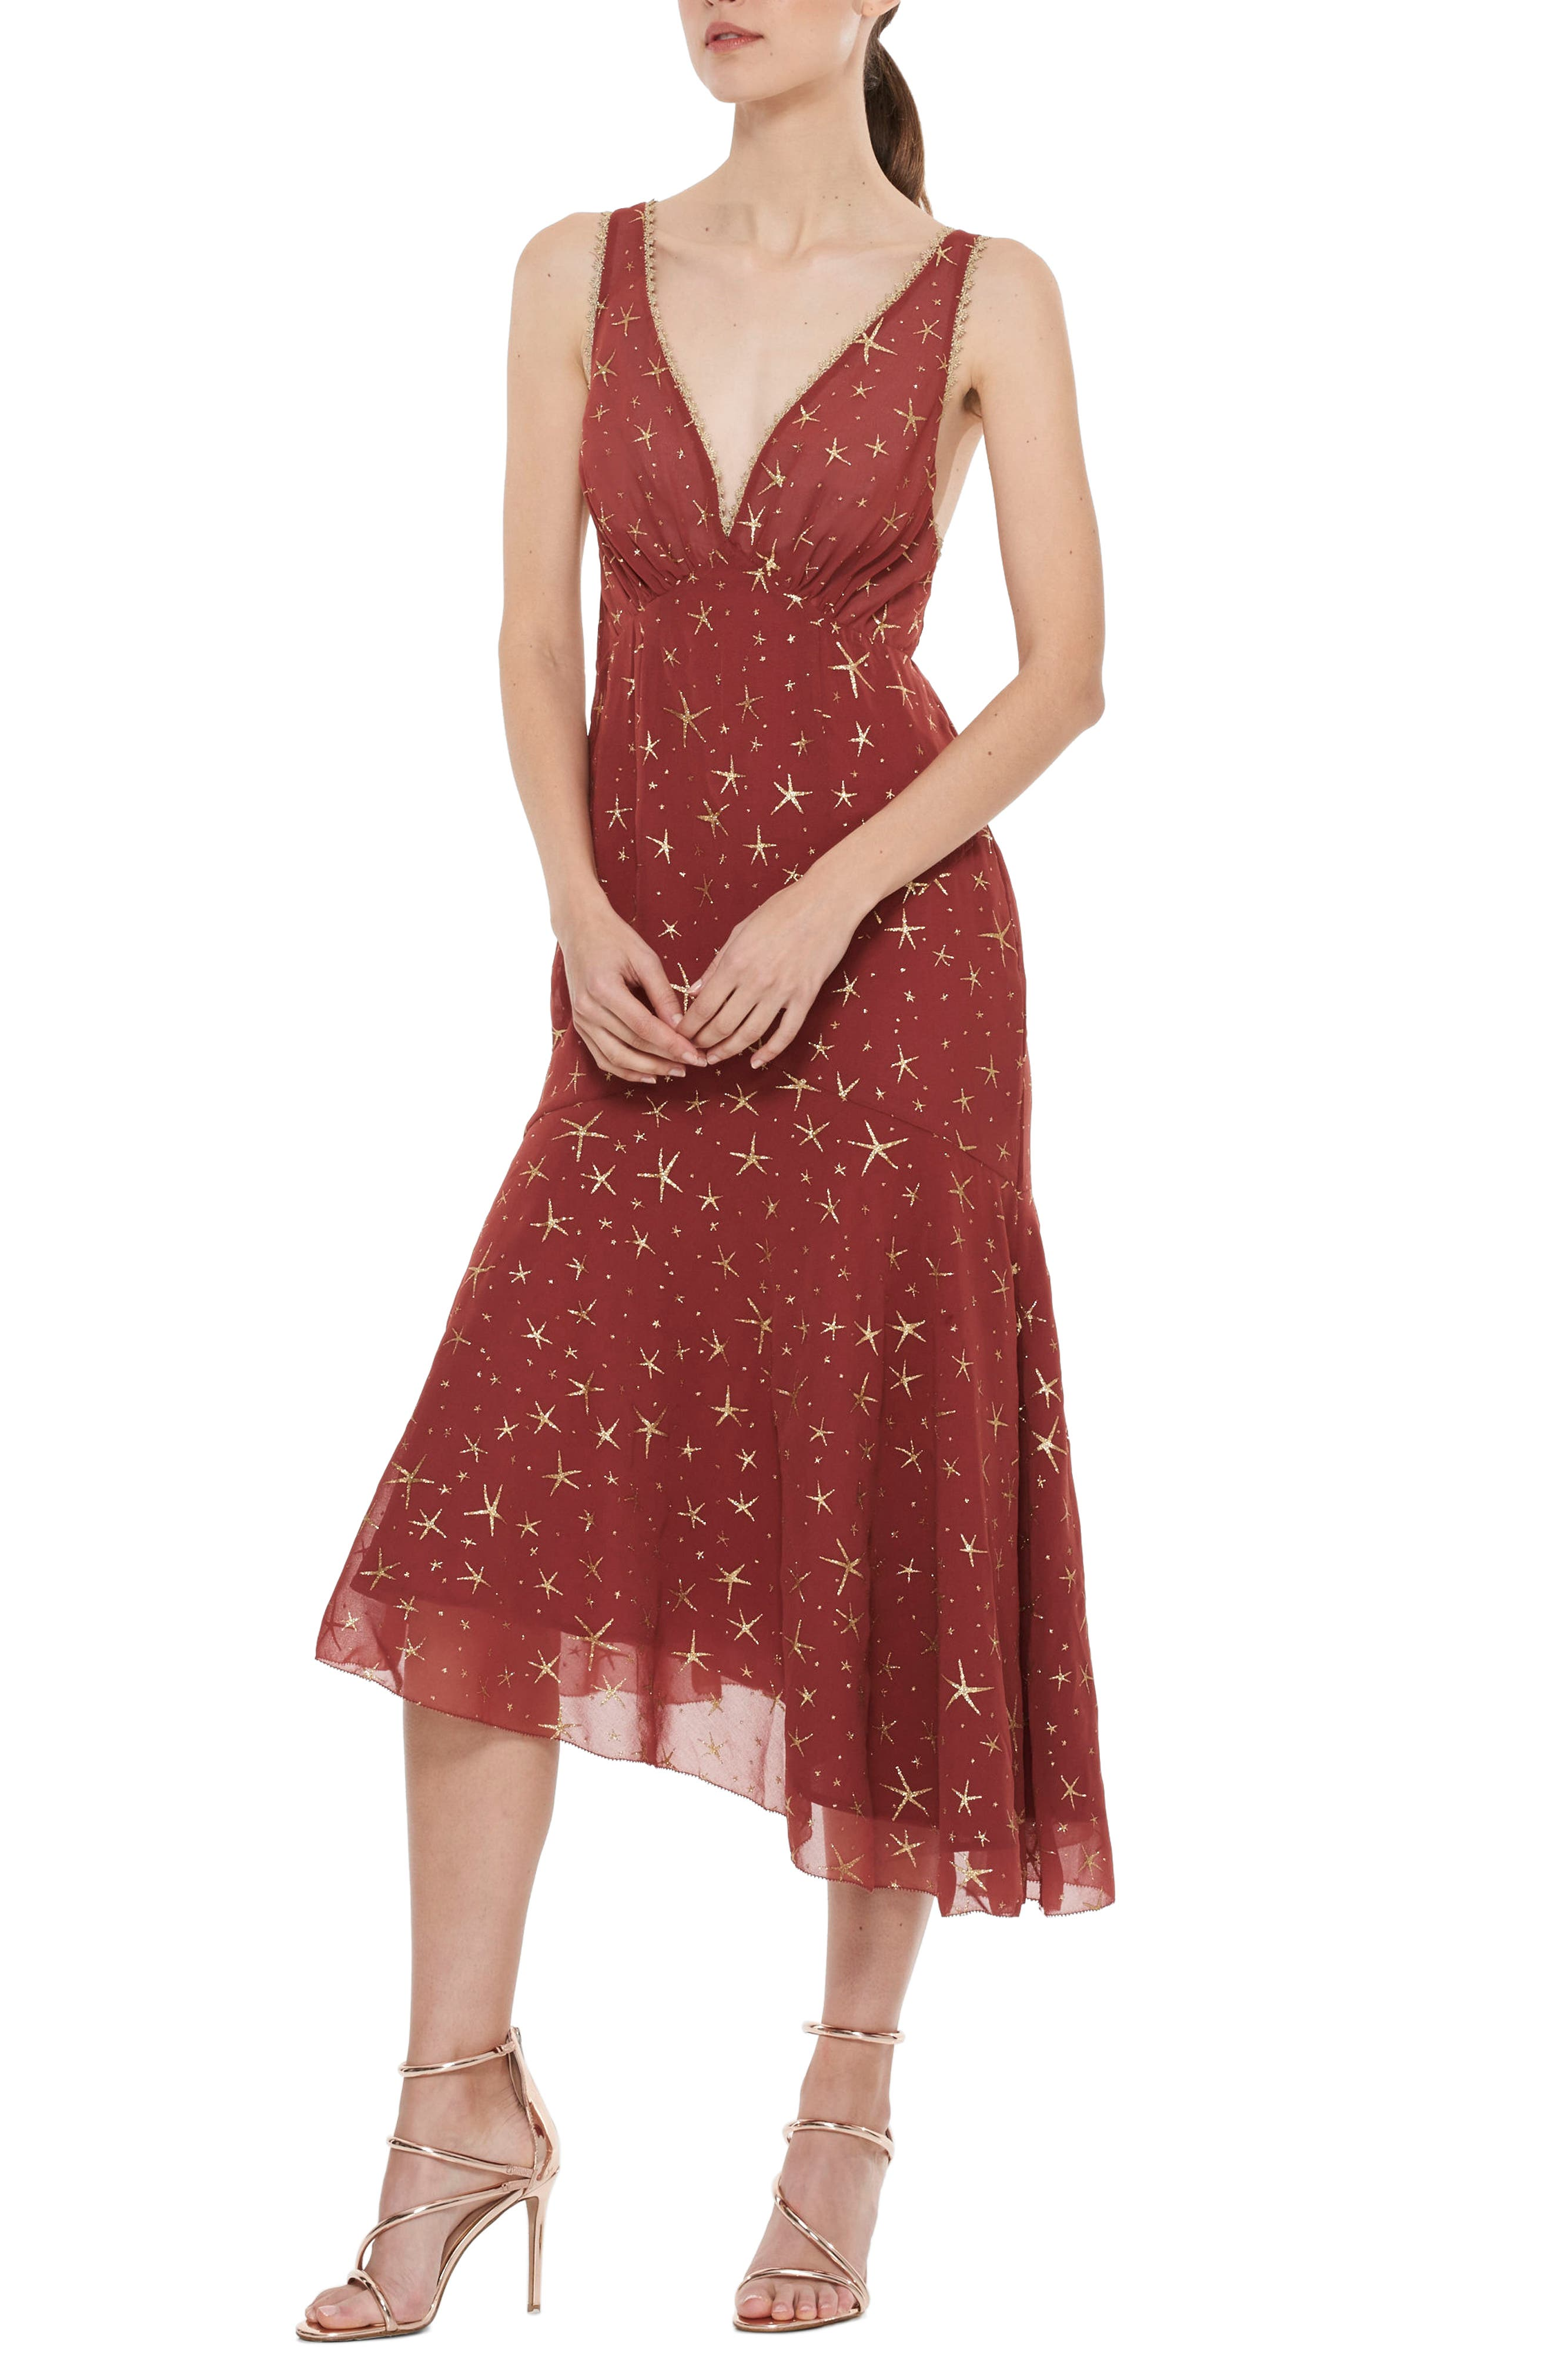 Stay Together Asymmetric Midi Dress,                             Main thumbnail 1, color,                             Wine And Gold